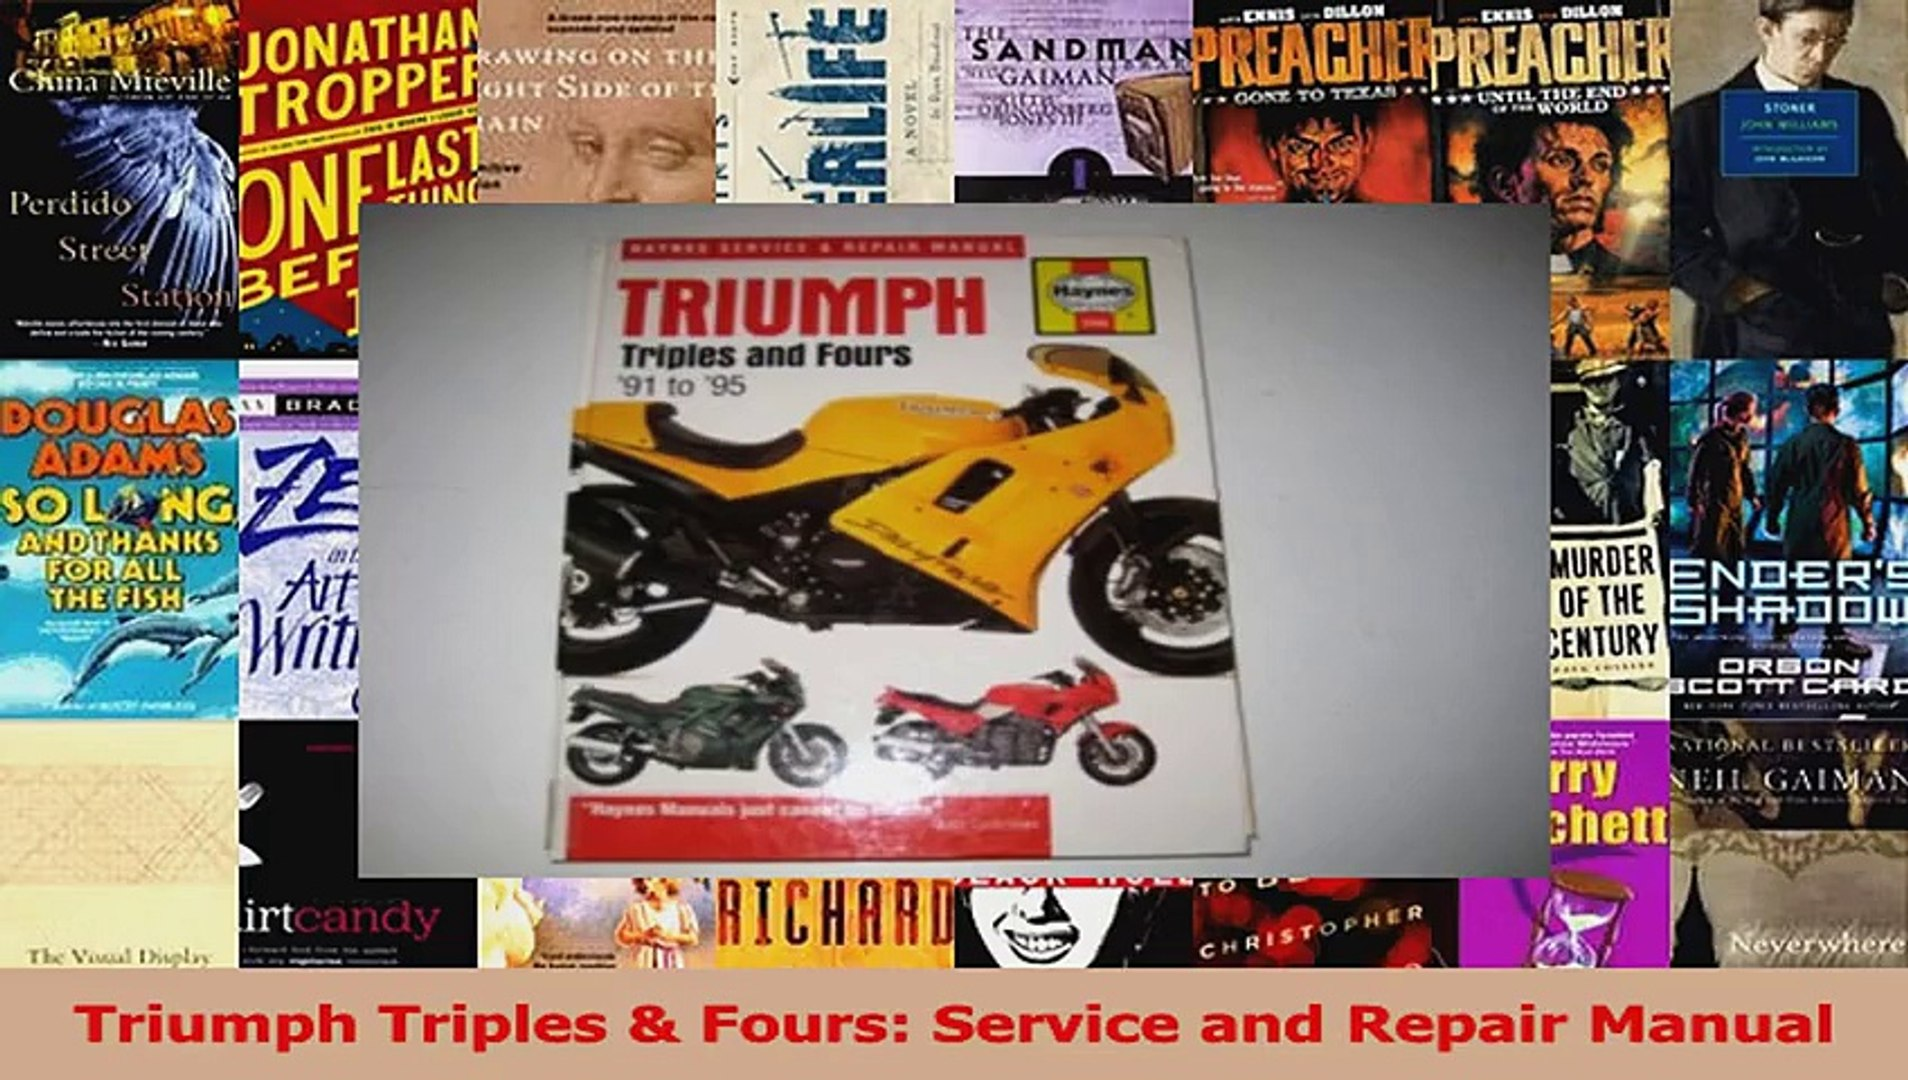 Triumph Daytona User Manual Ebook